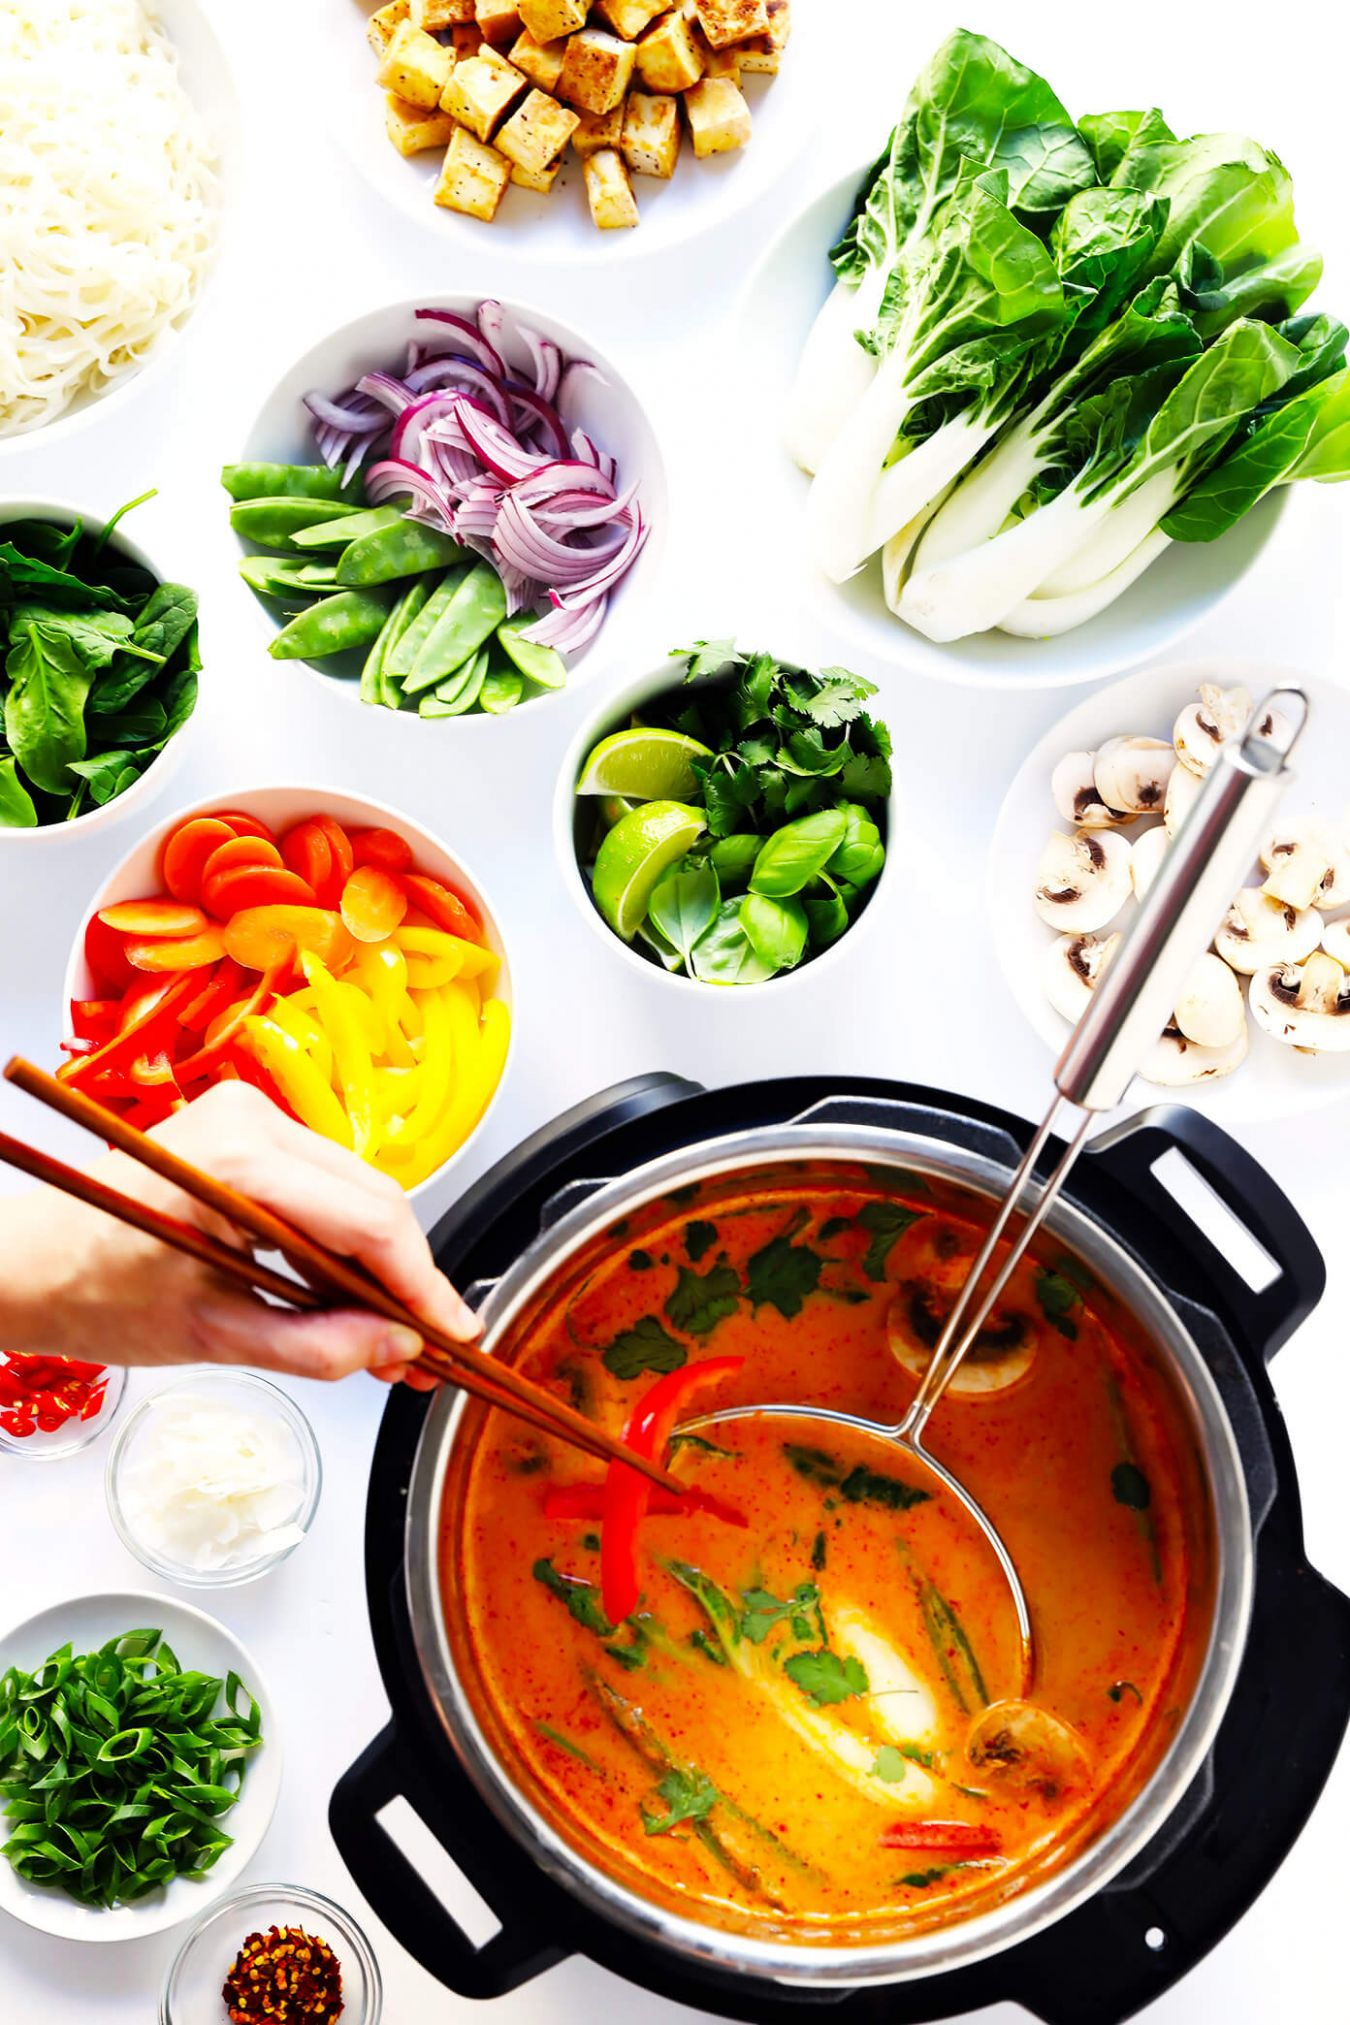 Easy Thai Curry Hot Pot | Gimme Some Oven - Recipe Vegetarian Hot Pot